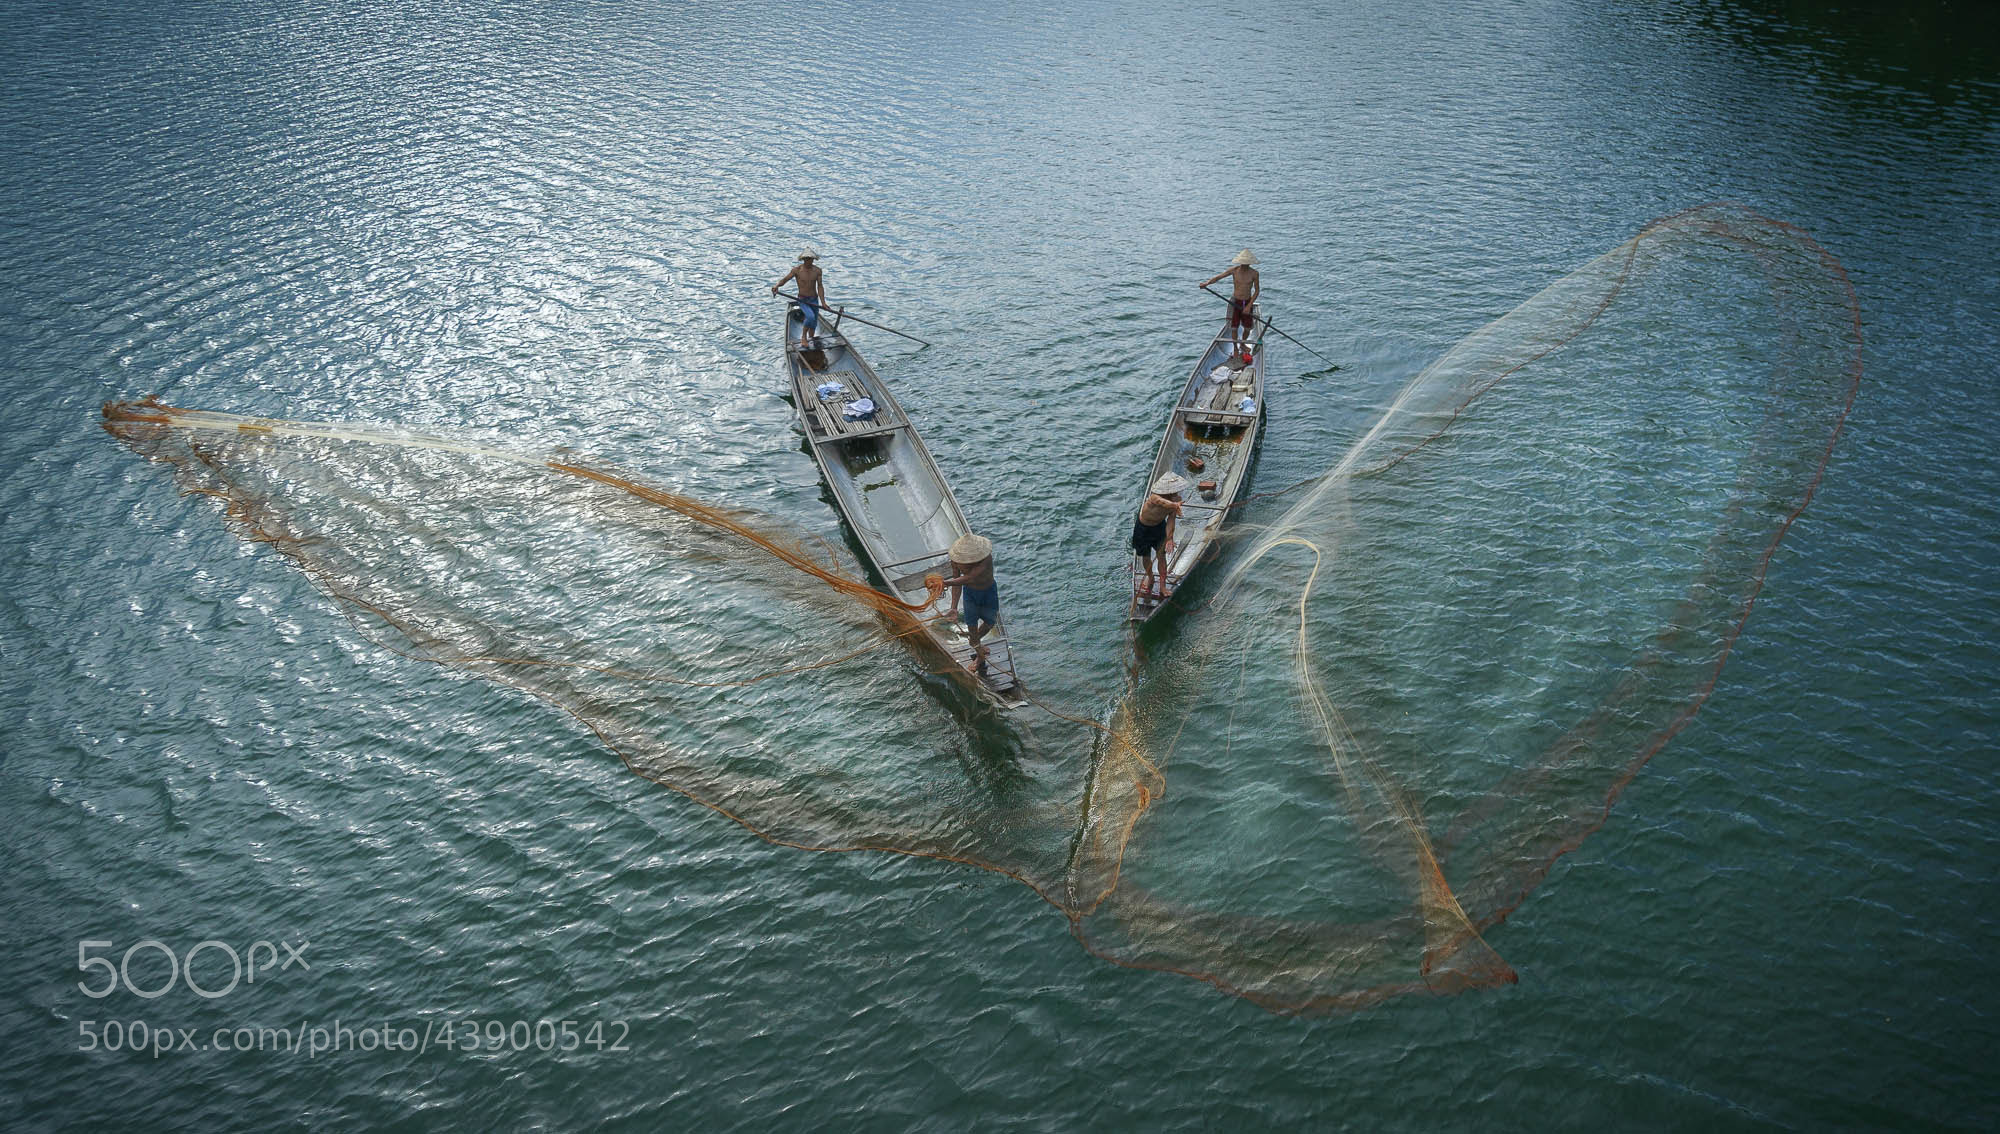 Photograph Fishing dance by Pham Ty on 500px